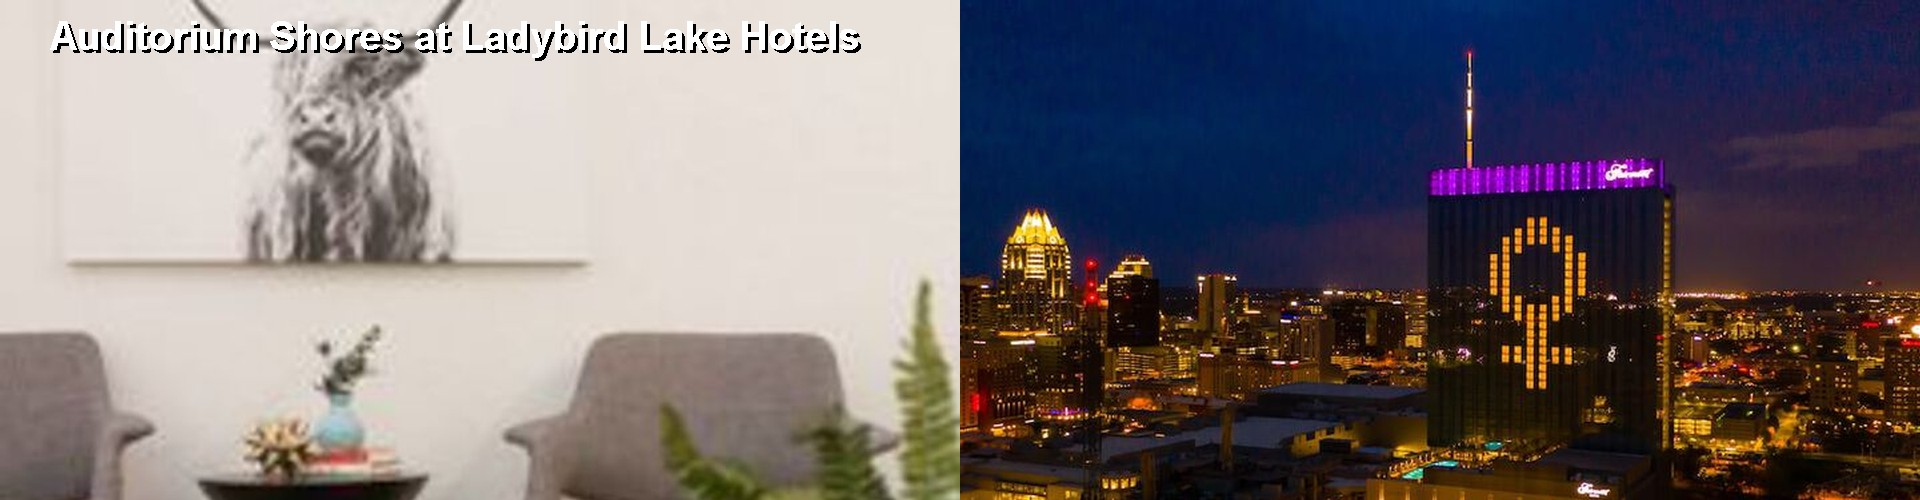 5 Best Hotels near Auditorium Shores at Ladybird Lake